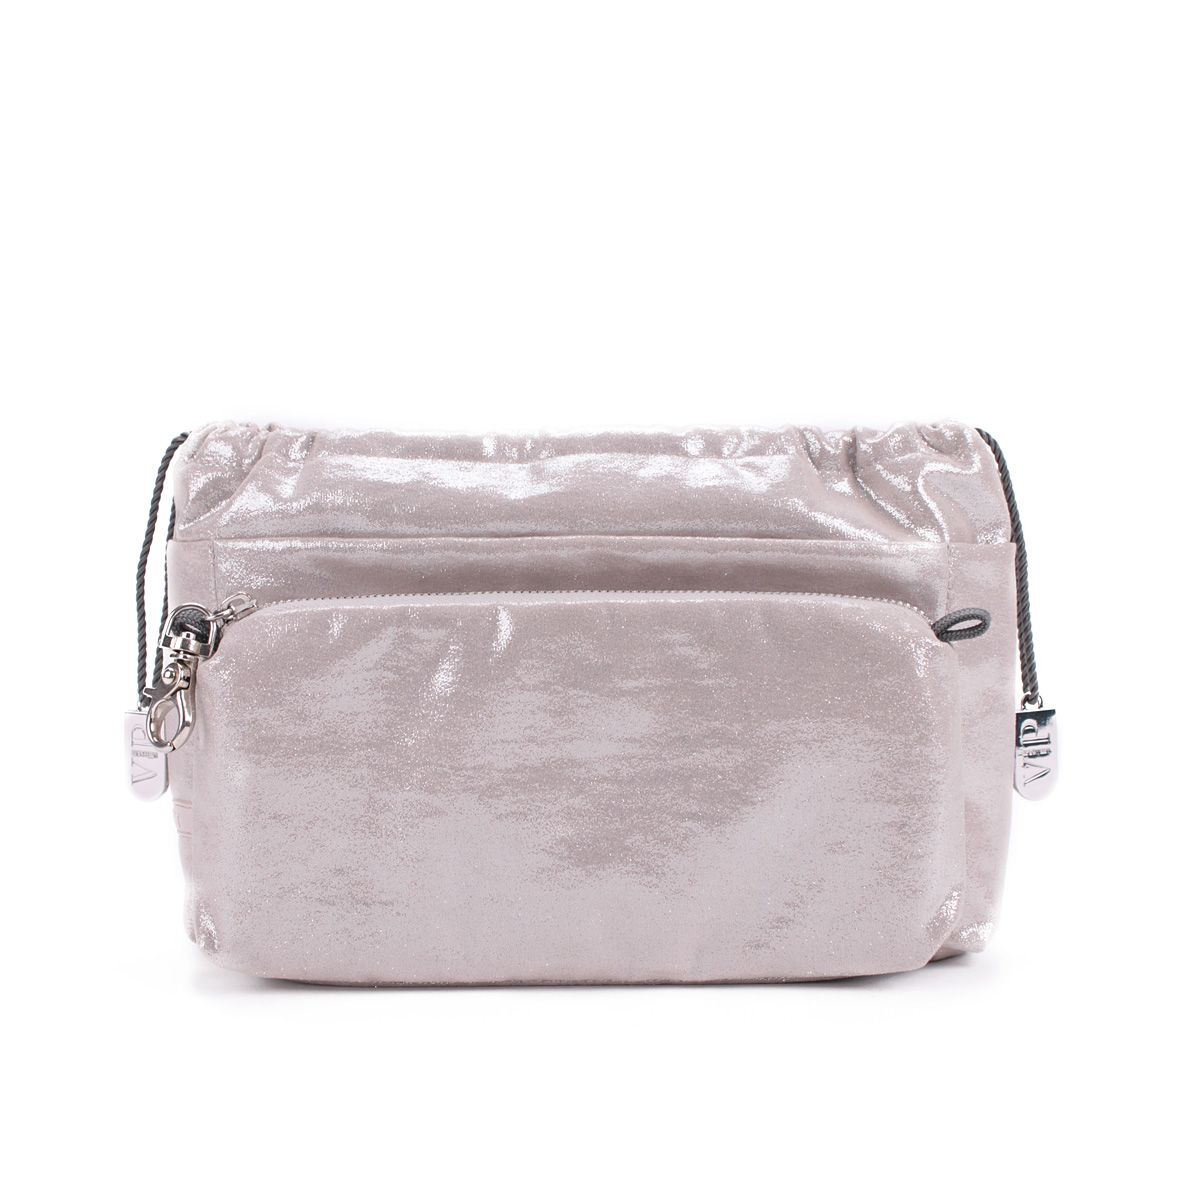 VIP LIMITED EDITION SHINY ARGENT - Summer 2014 collection. The original bag in bag. #tintamar #vip #bagorganizer #baginbag #pouch